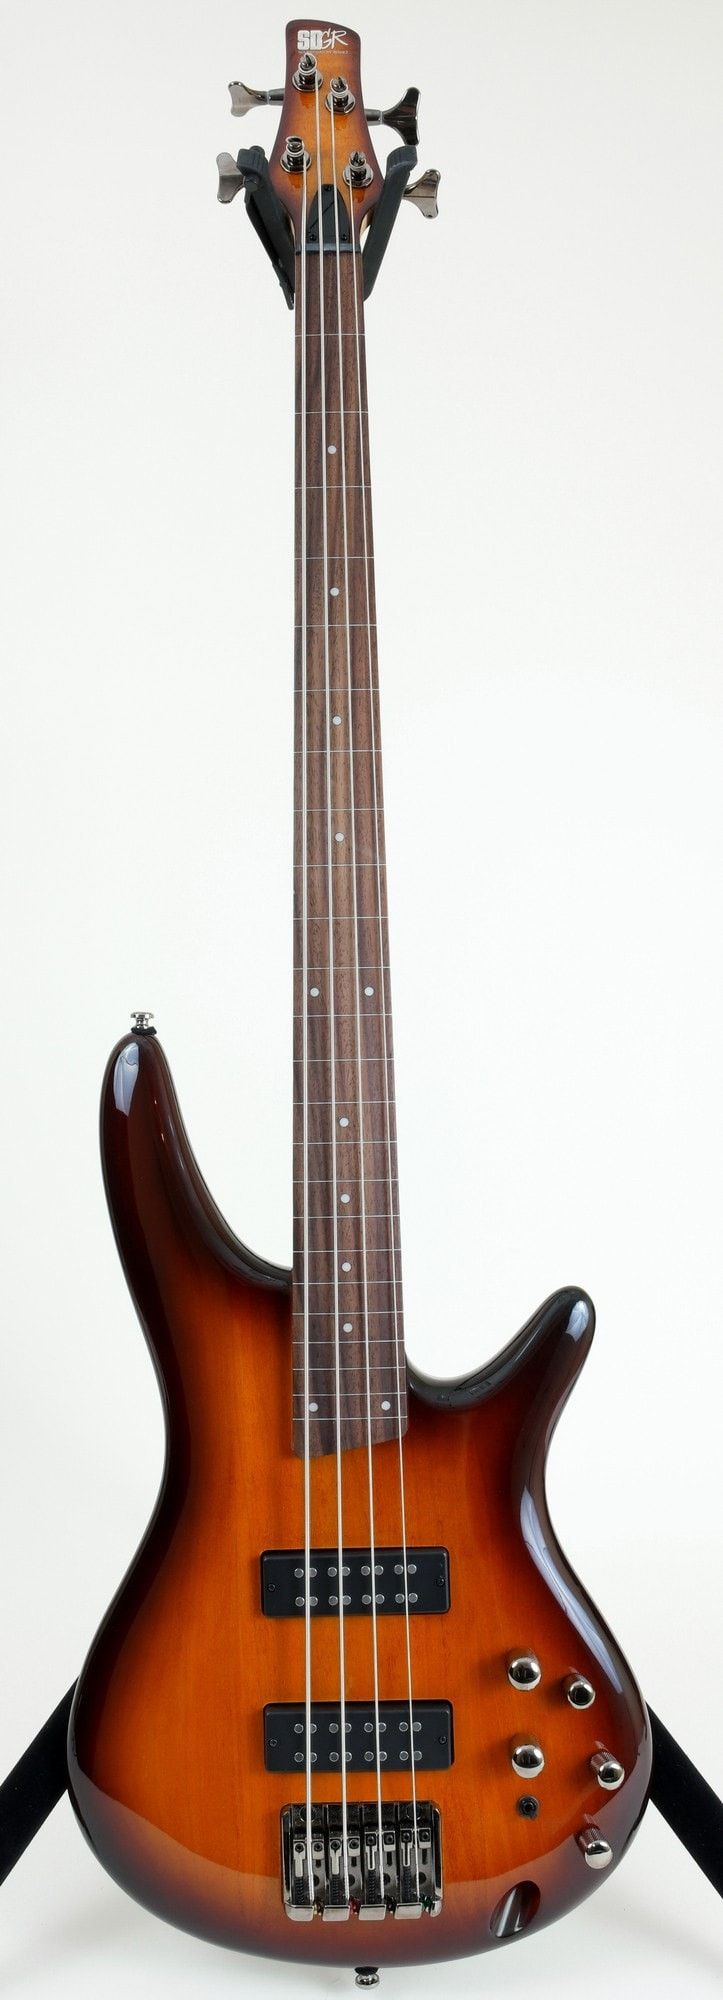 7f0c73338b88877c3bd224a44ac6089f bass guitars 1051 best bass guitars and other instruments images on pinterest Ibanez GSR205 at sewacar.co